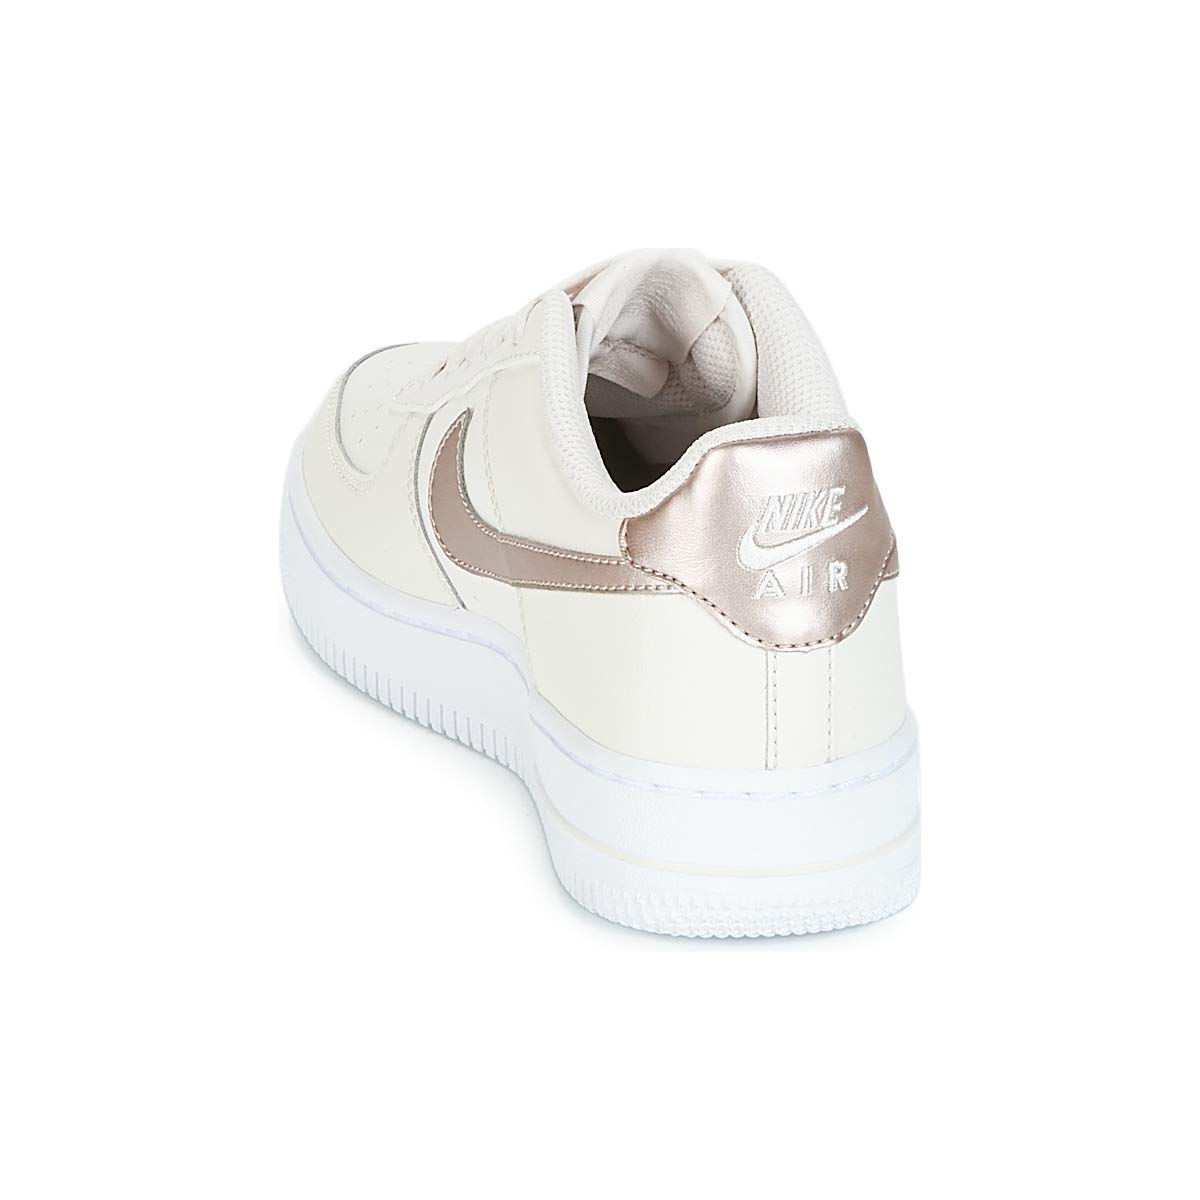 Nike Air Force 1 (GS), Zapatos de Baloncesto para Niñas: Amazon.es: Zapatos y complementos